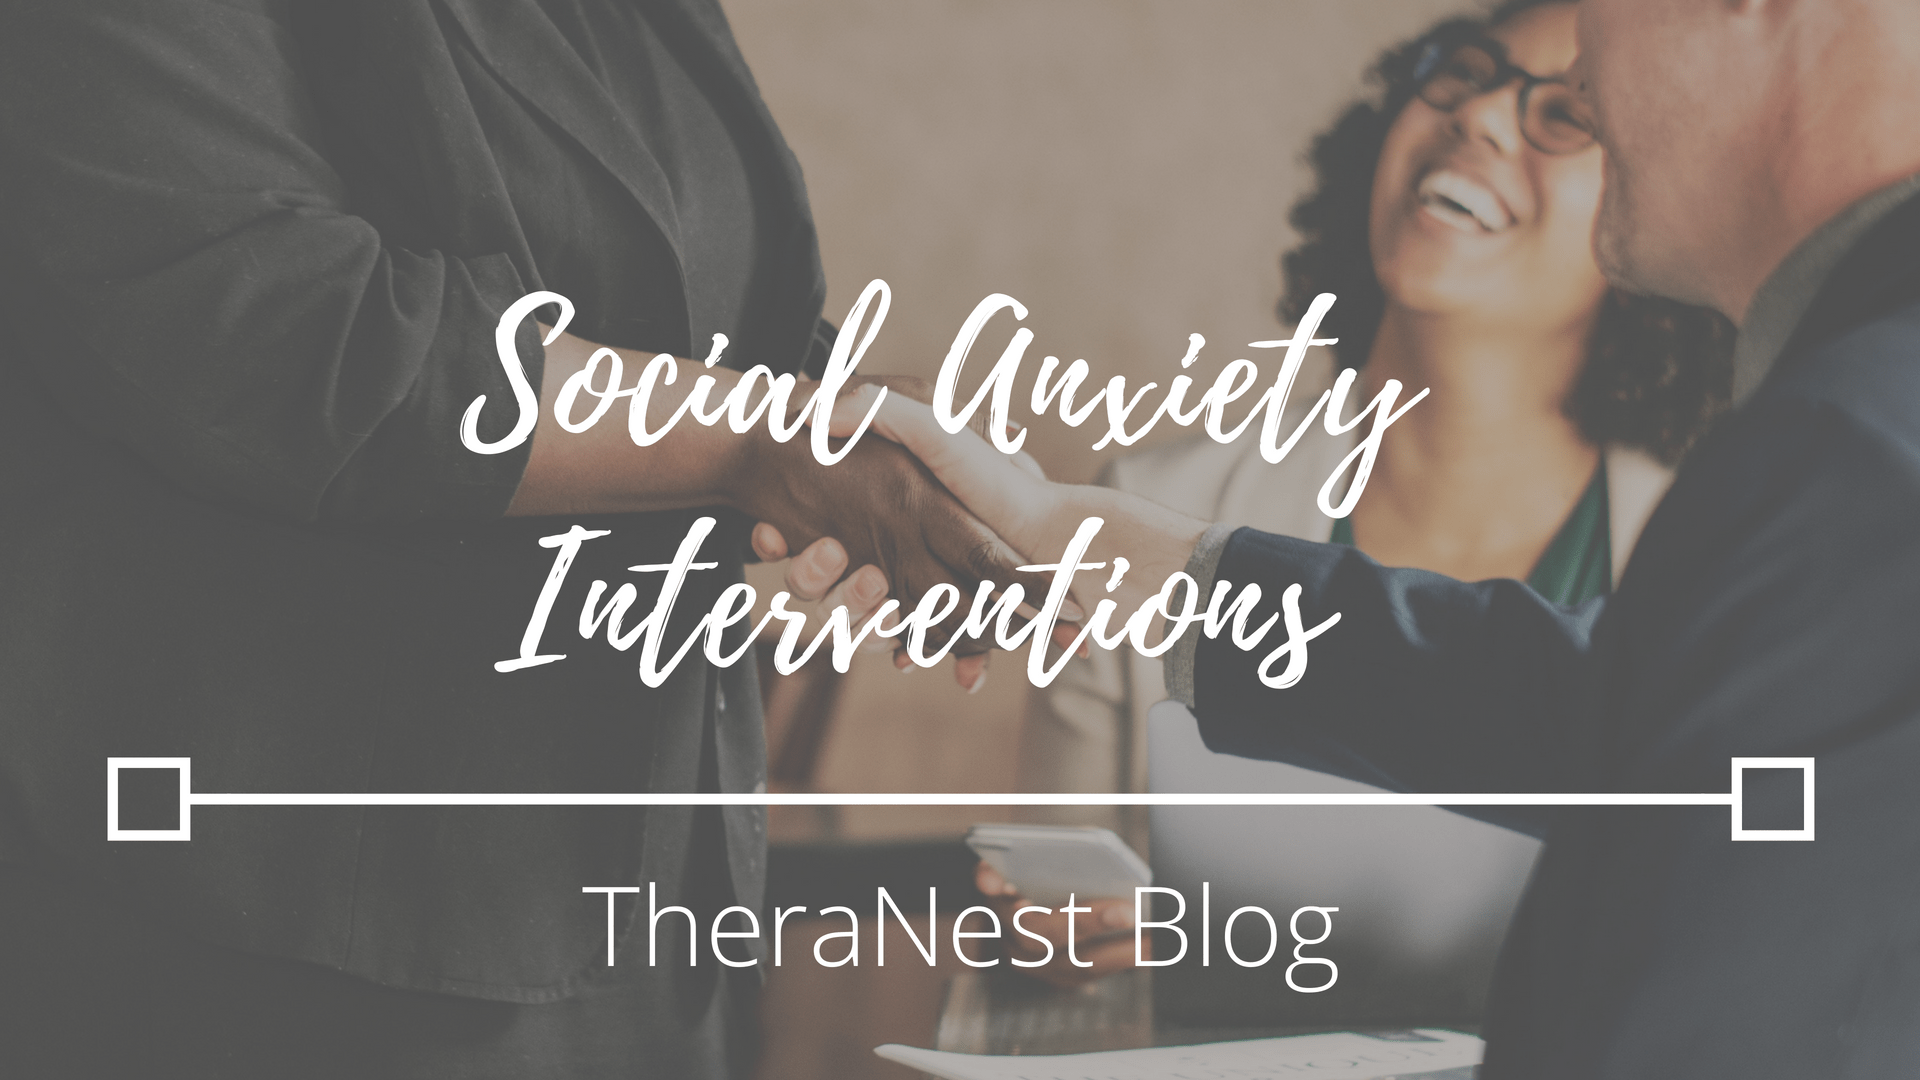 The Utic Interventions For Social Anxiety